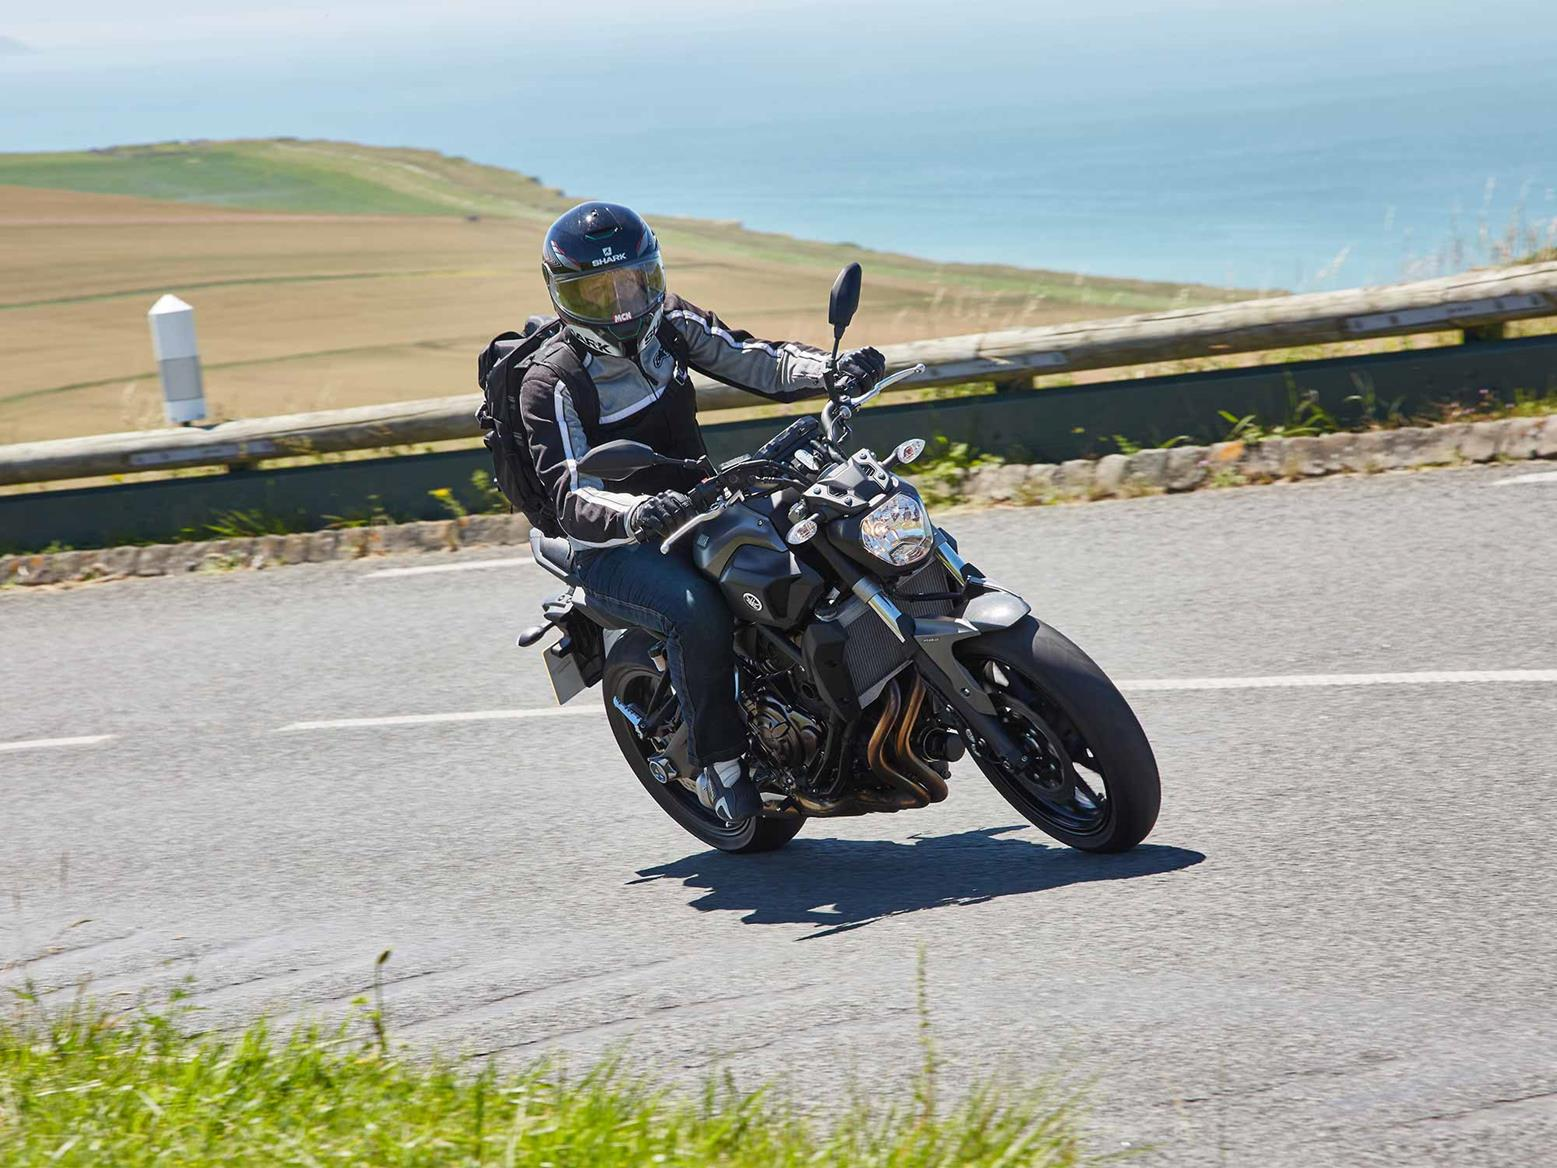 Riding a 2016 Yamaha MT-07